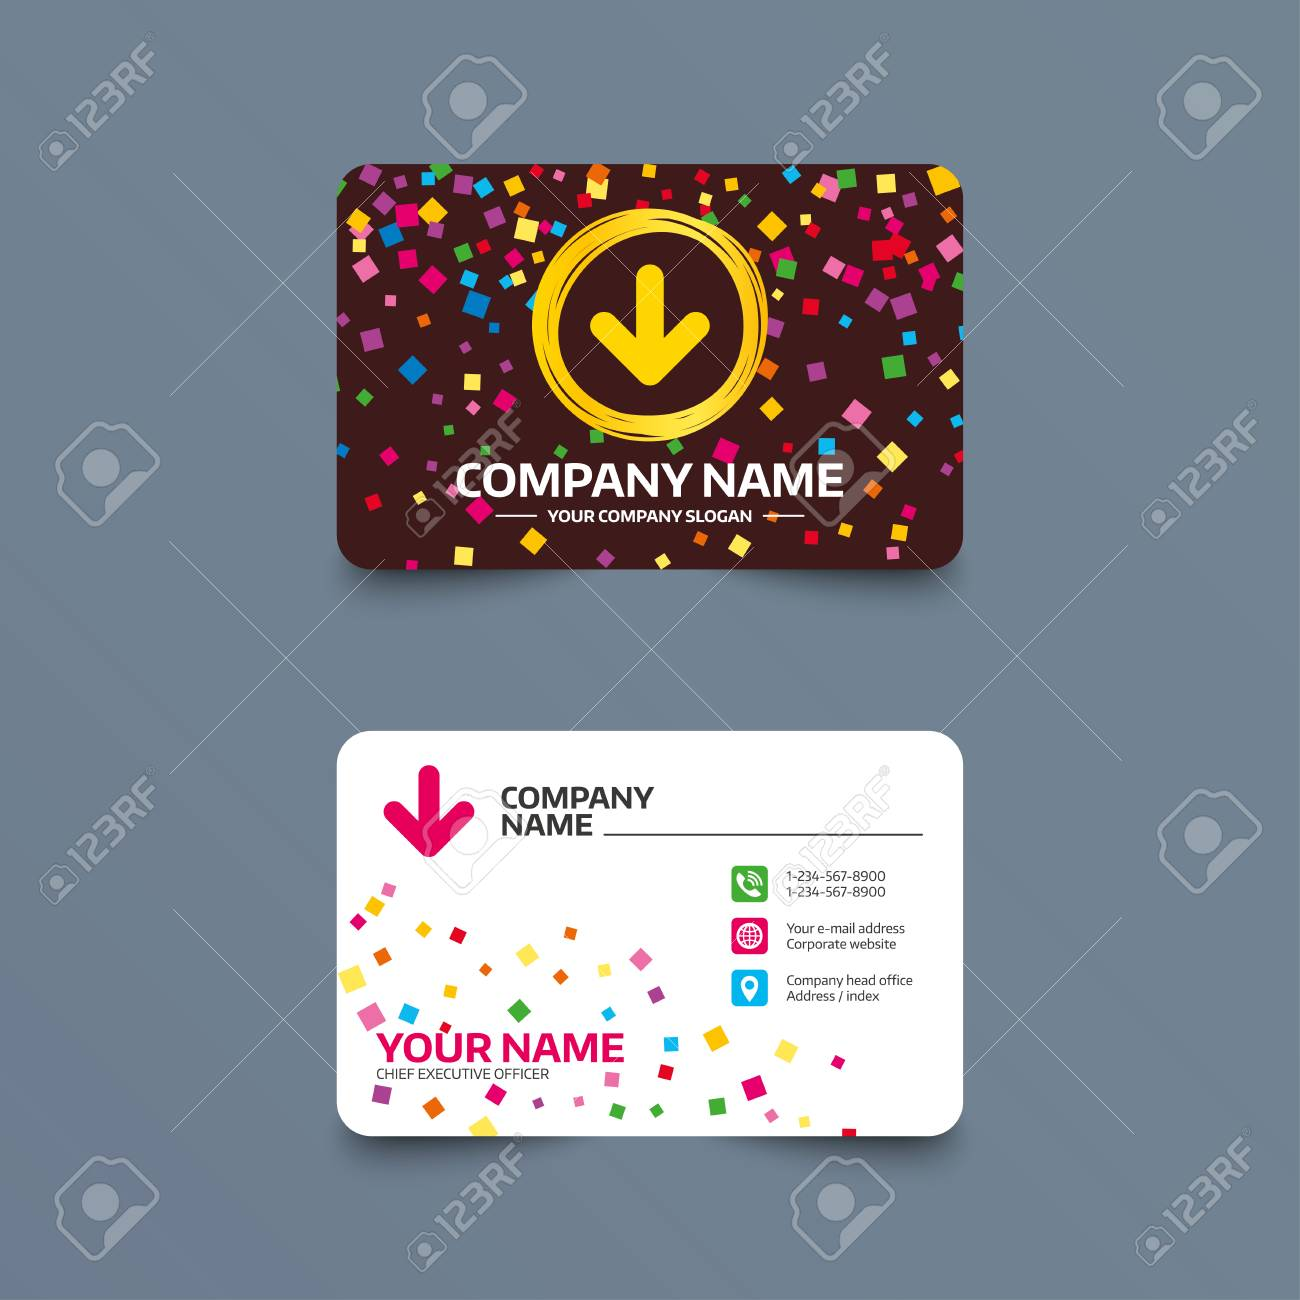 Business Card Template With Confetti Pieces. Download Icon. Upload ...